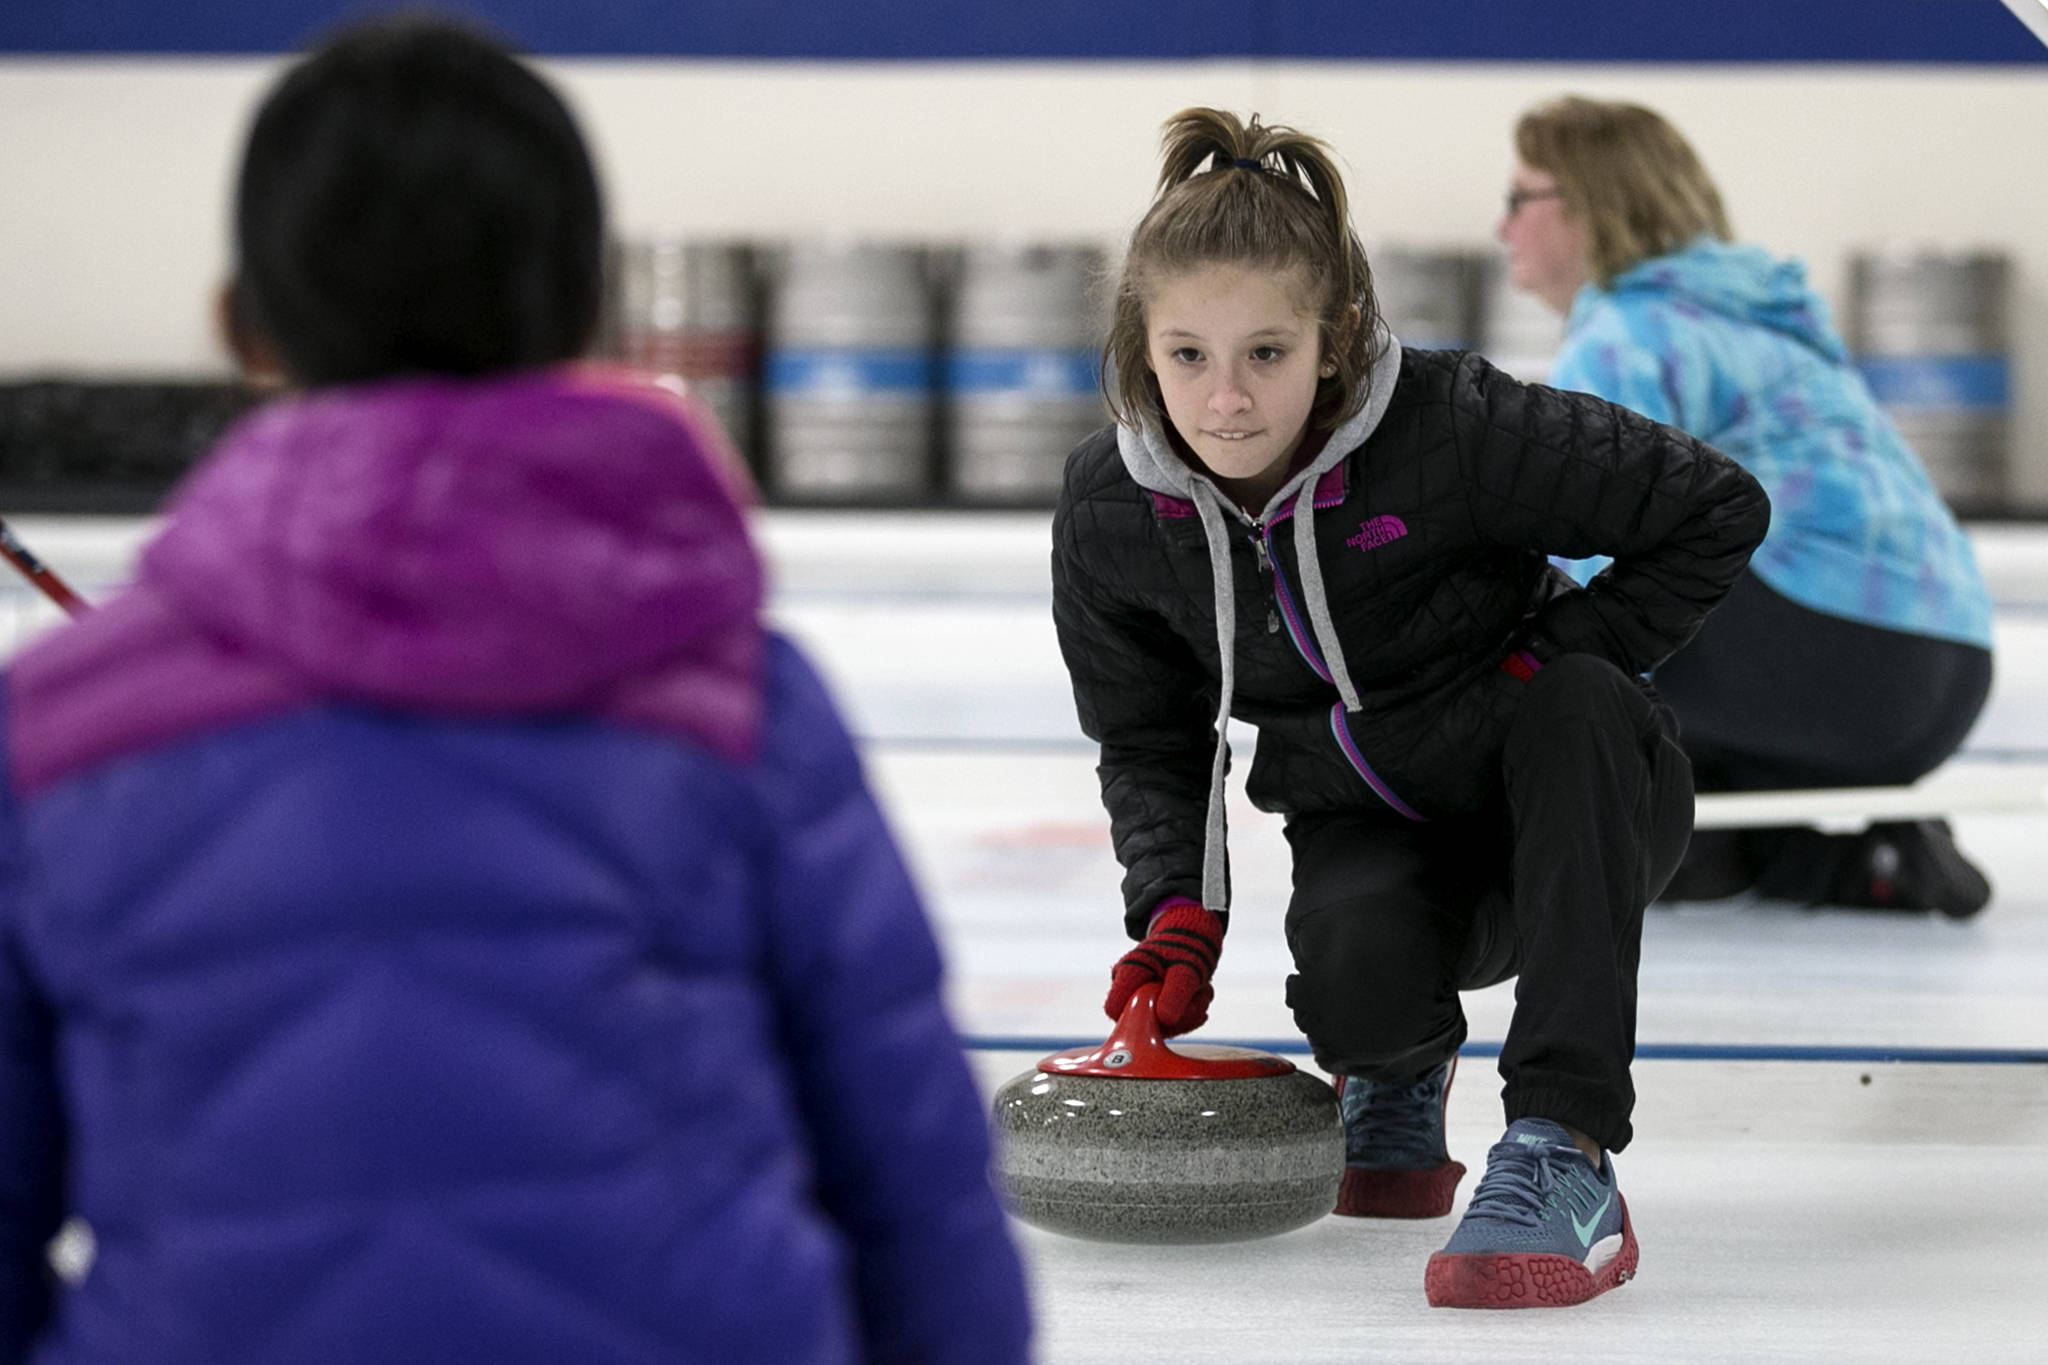 Sole Norman (right) practices rotating a rock to Ruby Kerwin during open house at the Granite Curling Club in Seattle on Feb. 18. (Kevin Clark / The Herald)